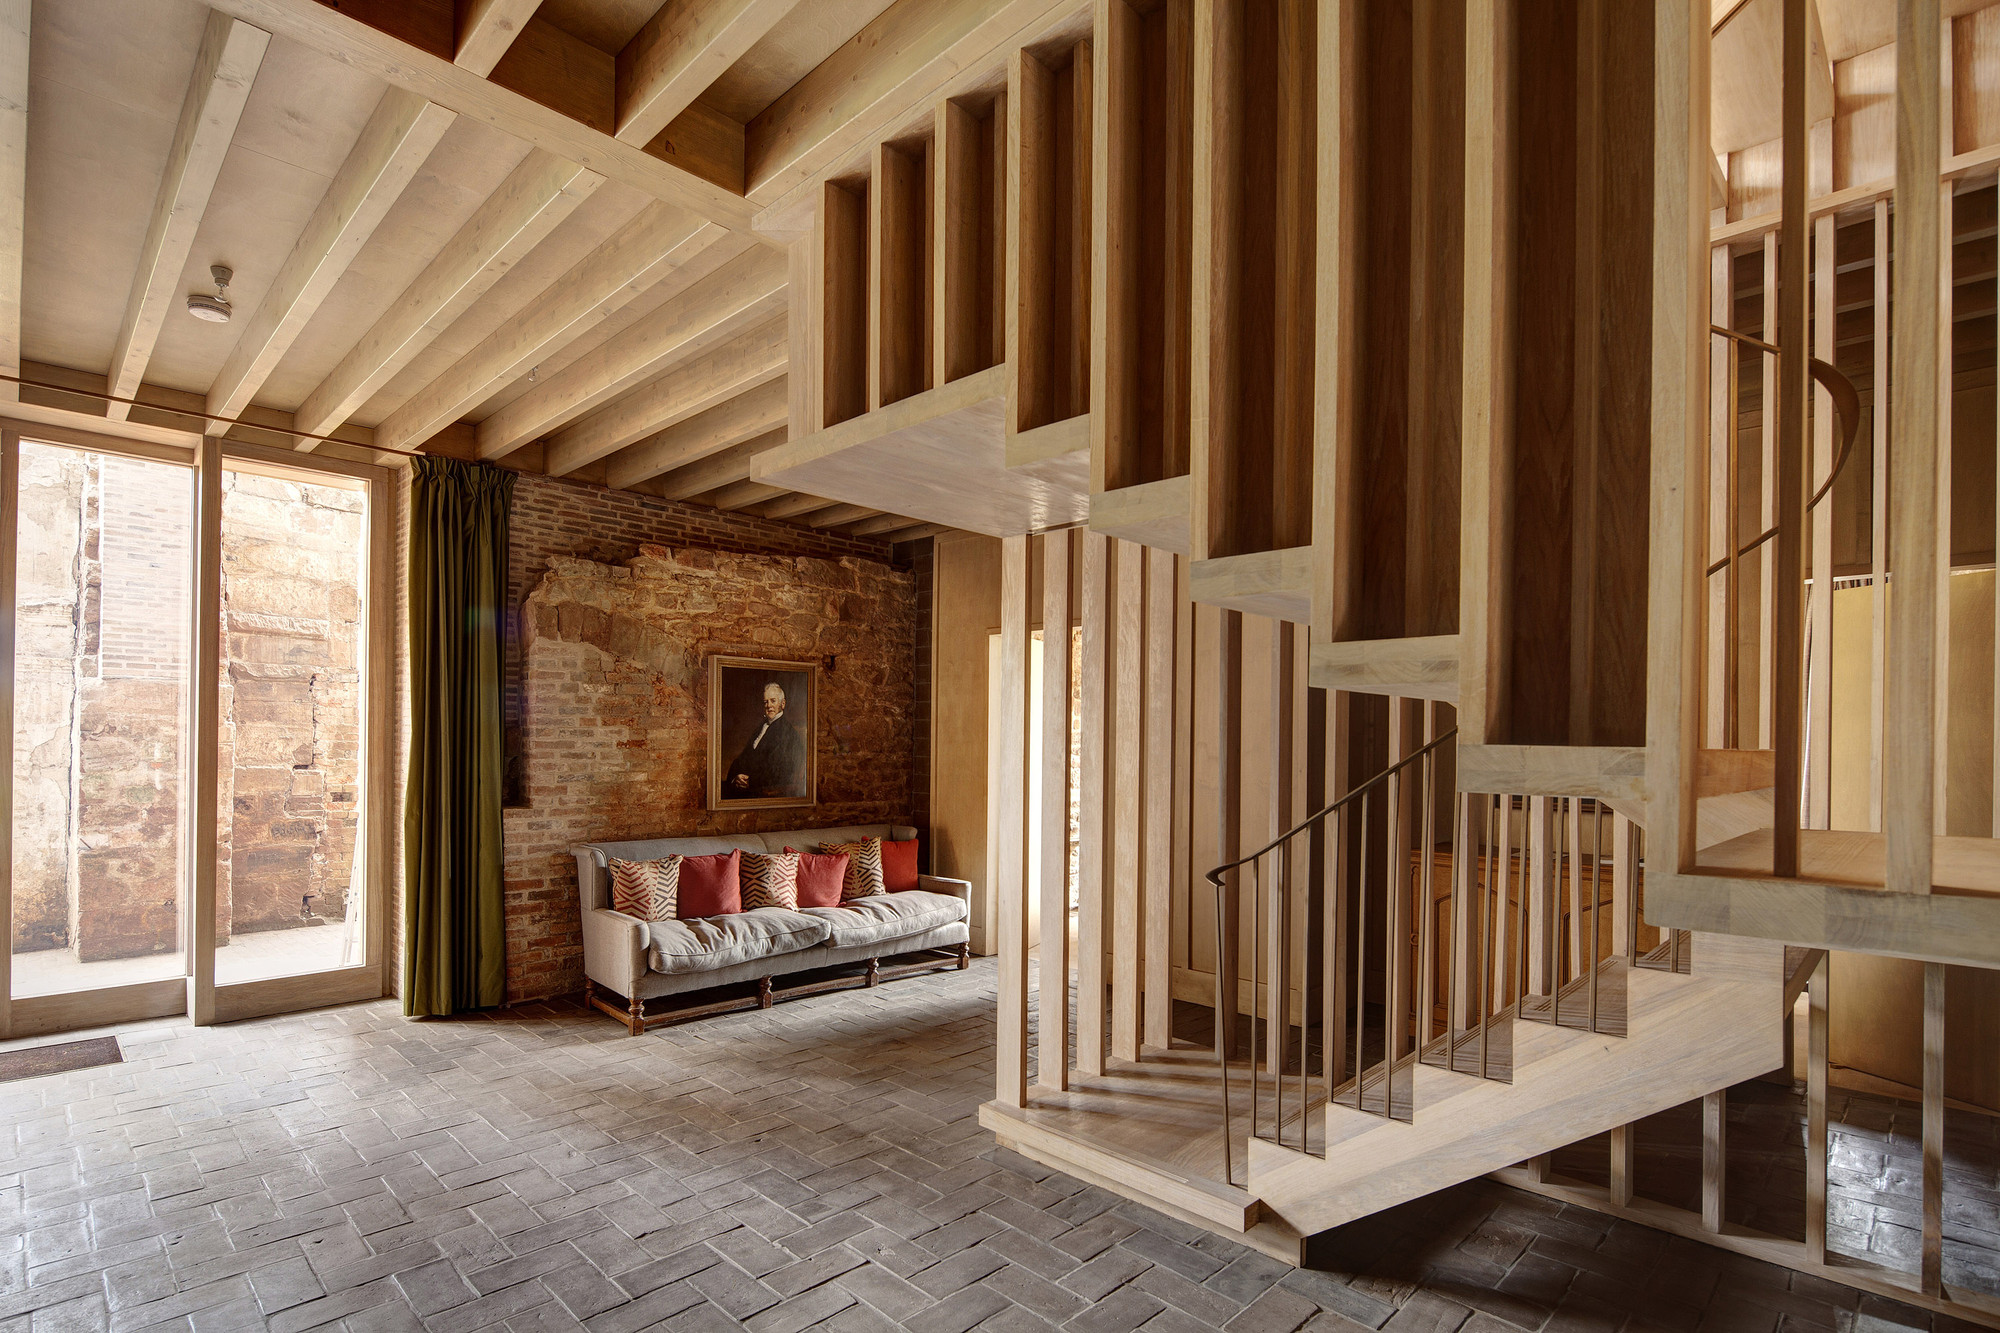 Critical Round-Up: Stirling Prize 2013